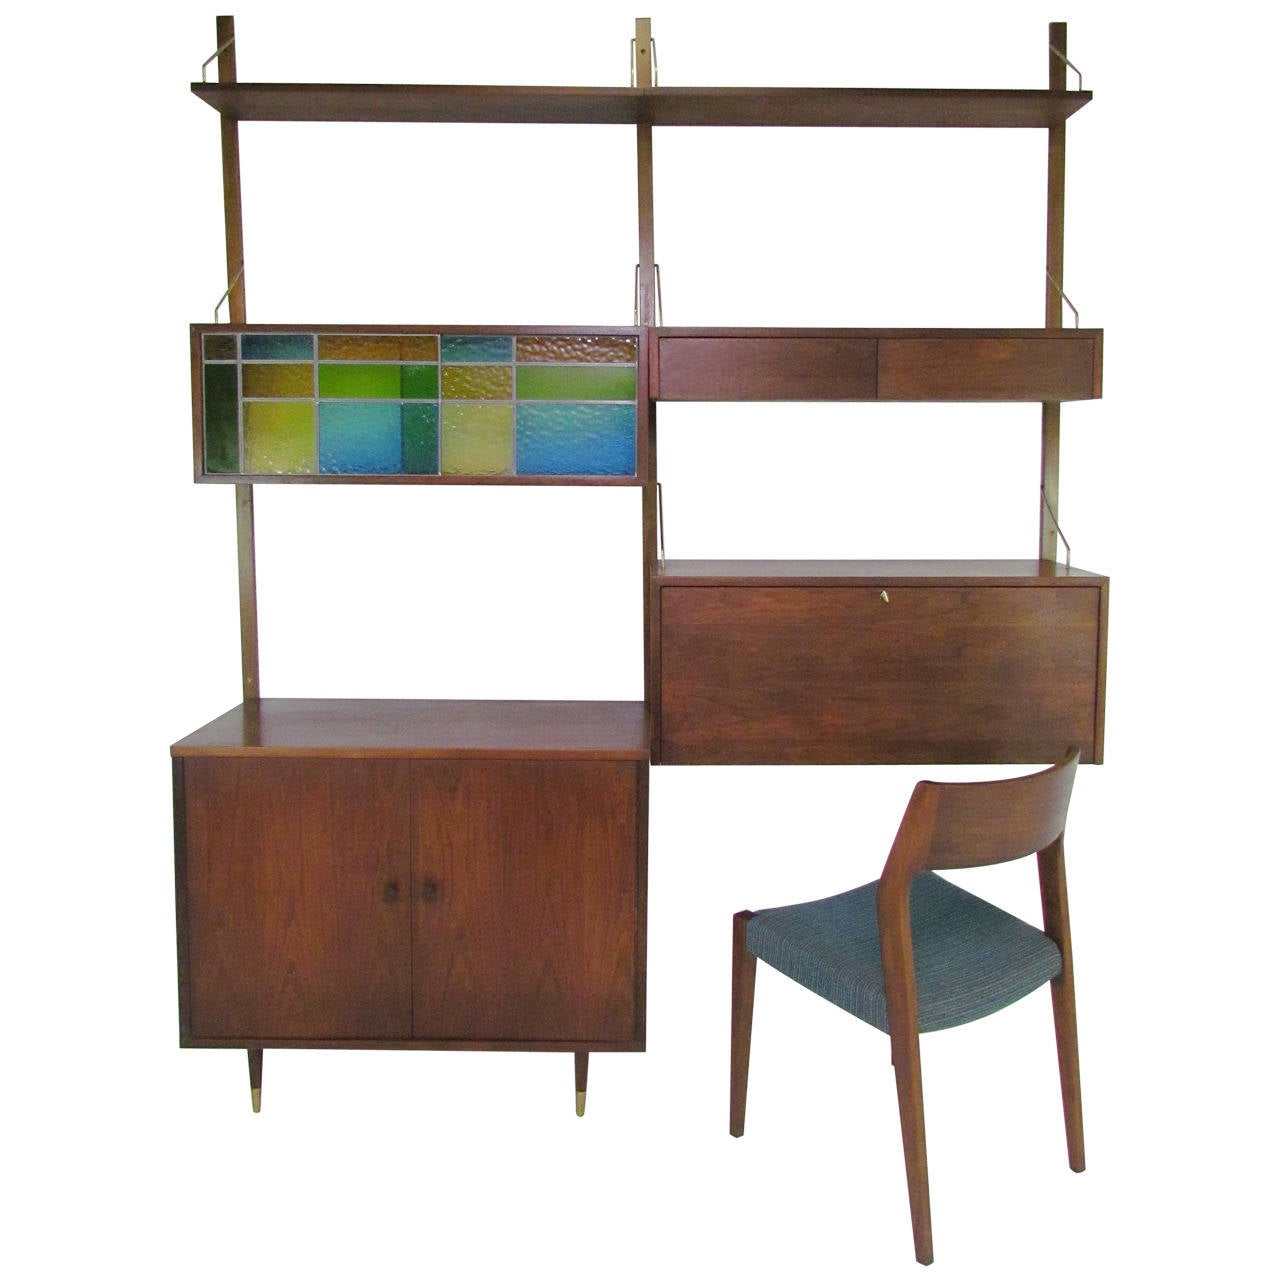 Danish Teak Wall Mounted Shelving Unit In The Manner Of